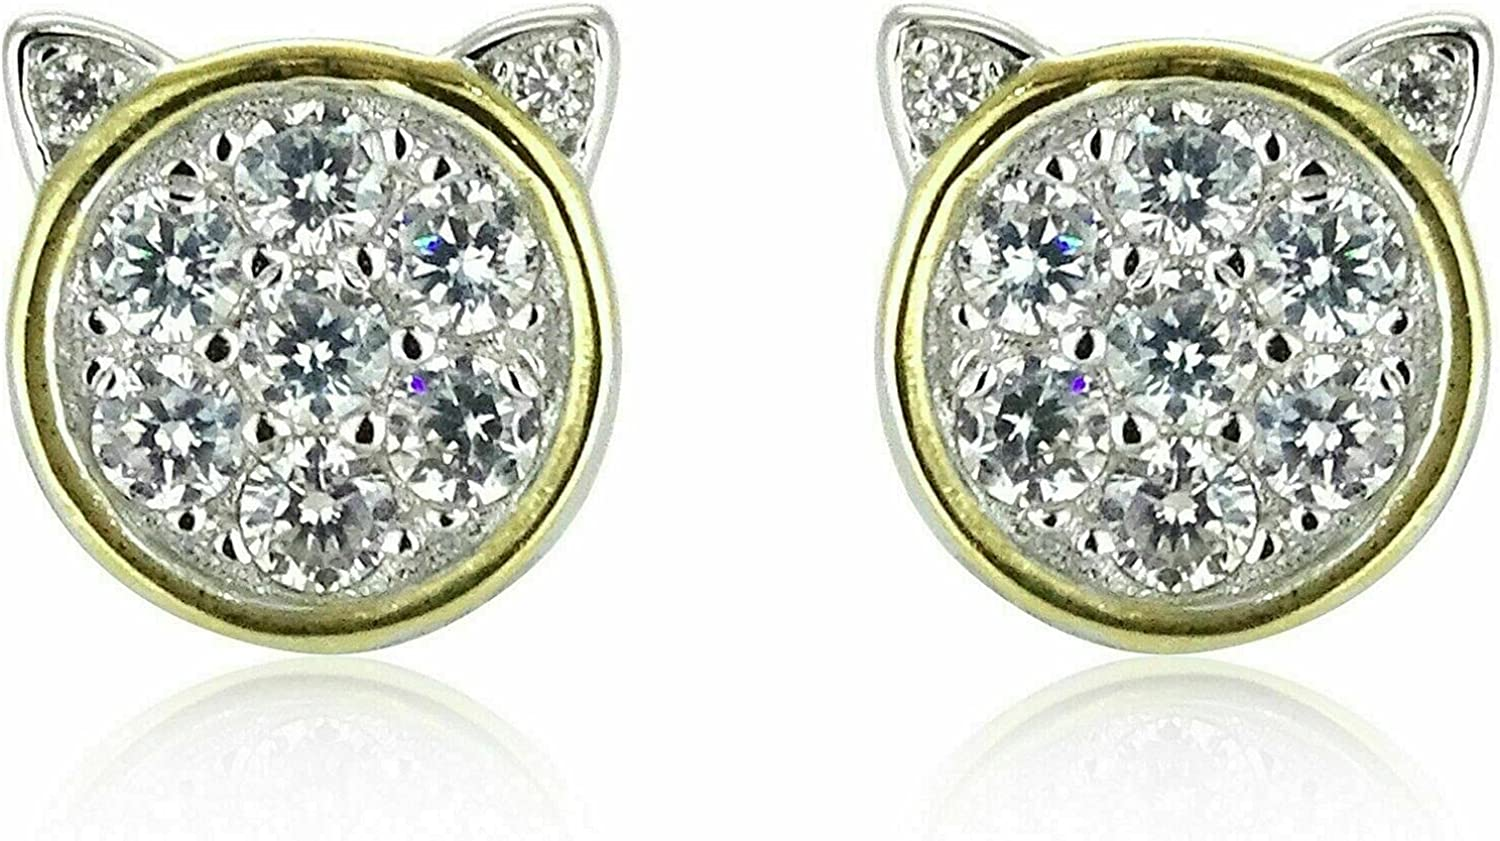 1Ct Round Cut Phoenix Mall Micro Pave Diamond Stud 14k Lucky Yel Al sold out. Earrings Cat